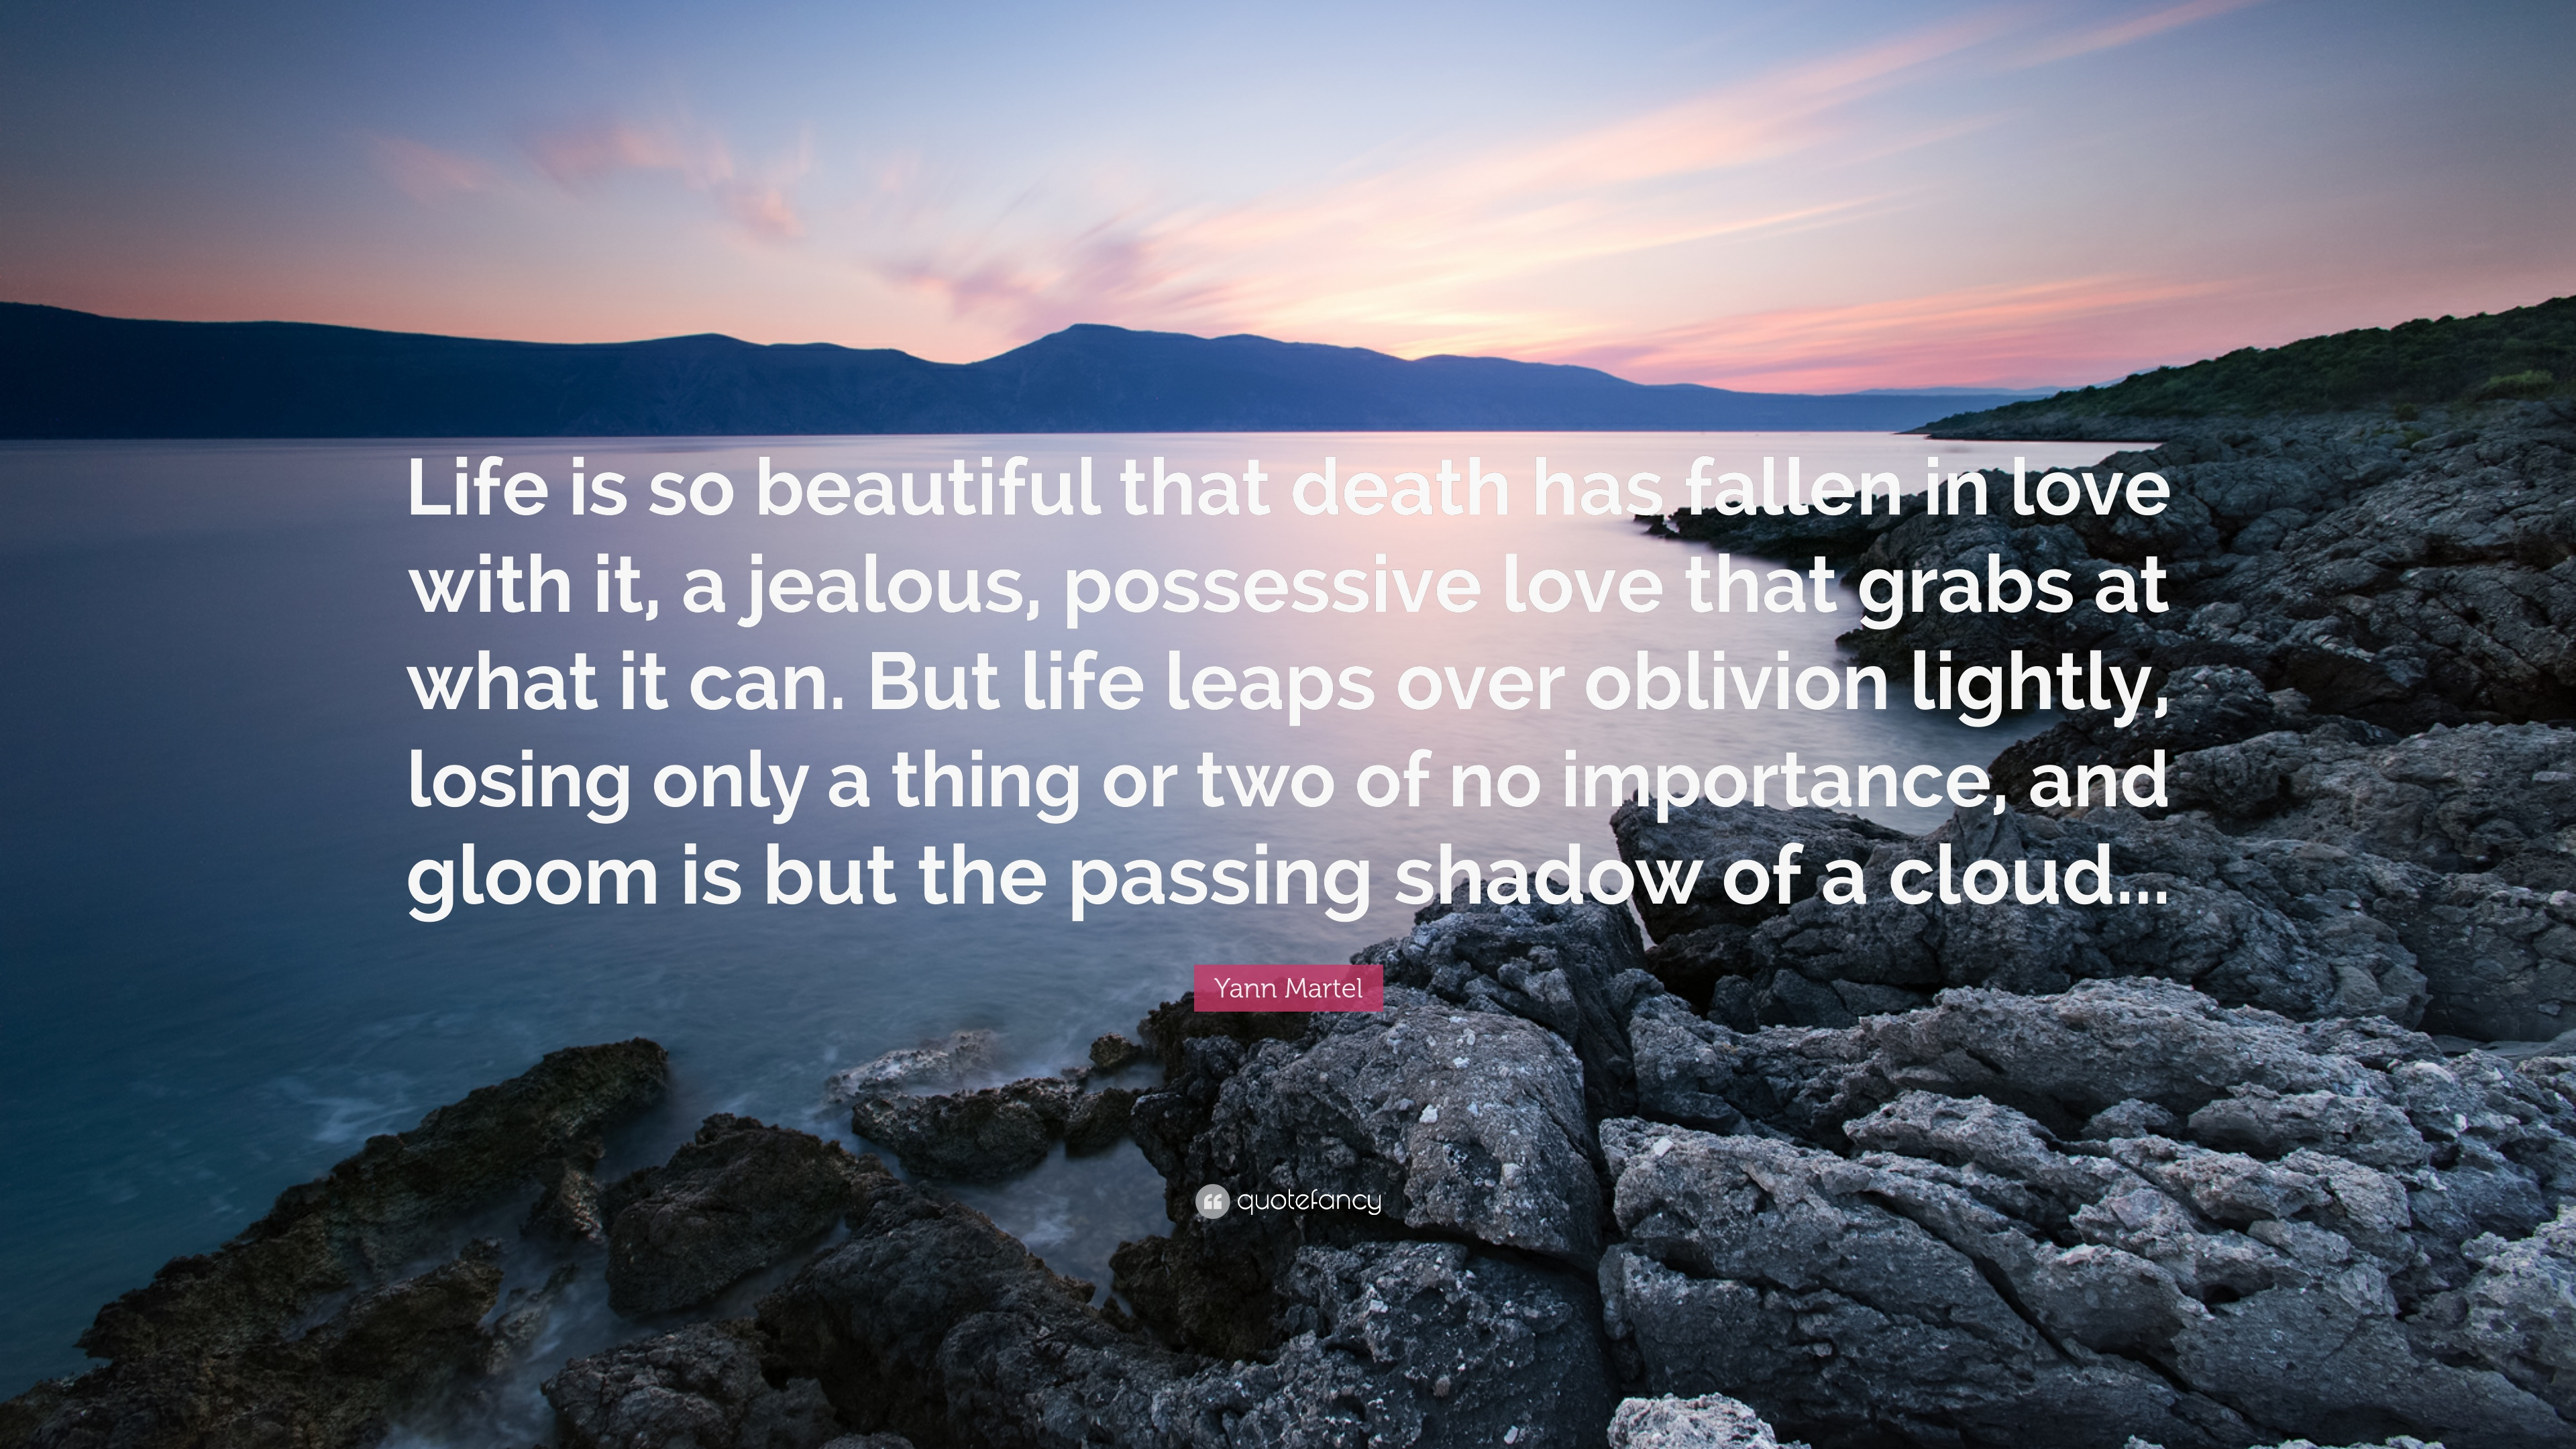 death is beautiful Quotes about life happy death quotes beautiful quotes about life happy quotes about death beautiful quotes about happiness quotes about change beautiful quotes about death and letting go christmas family quotes quotes about beauty abraham lincoln quotes albert einstein quotes bill gates quotes.